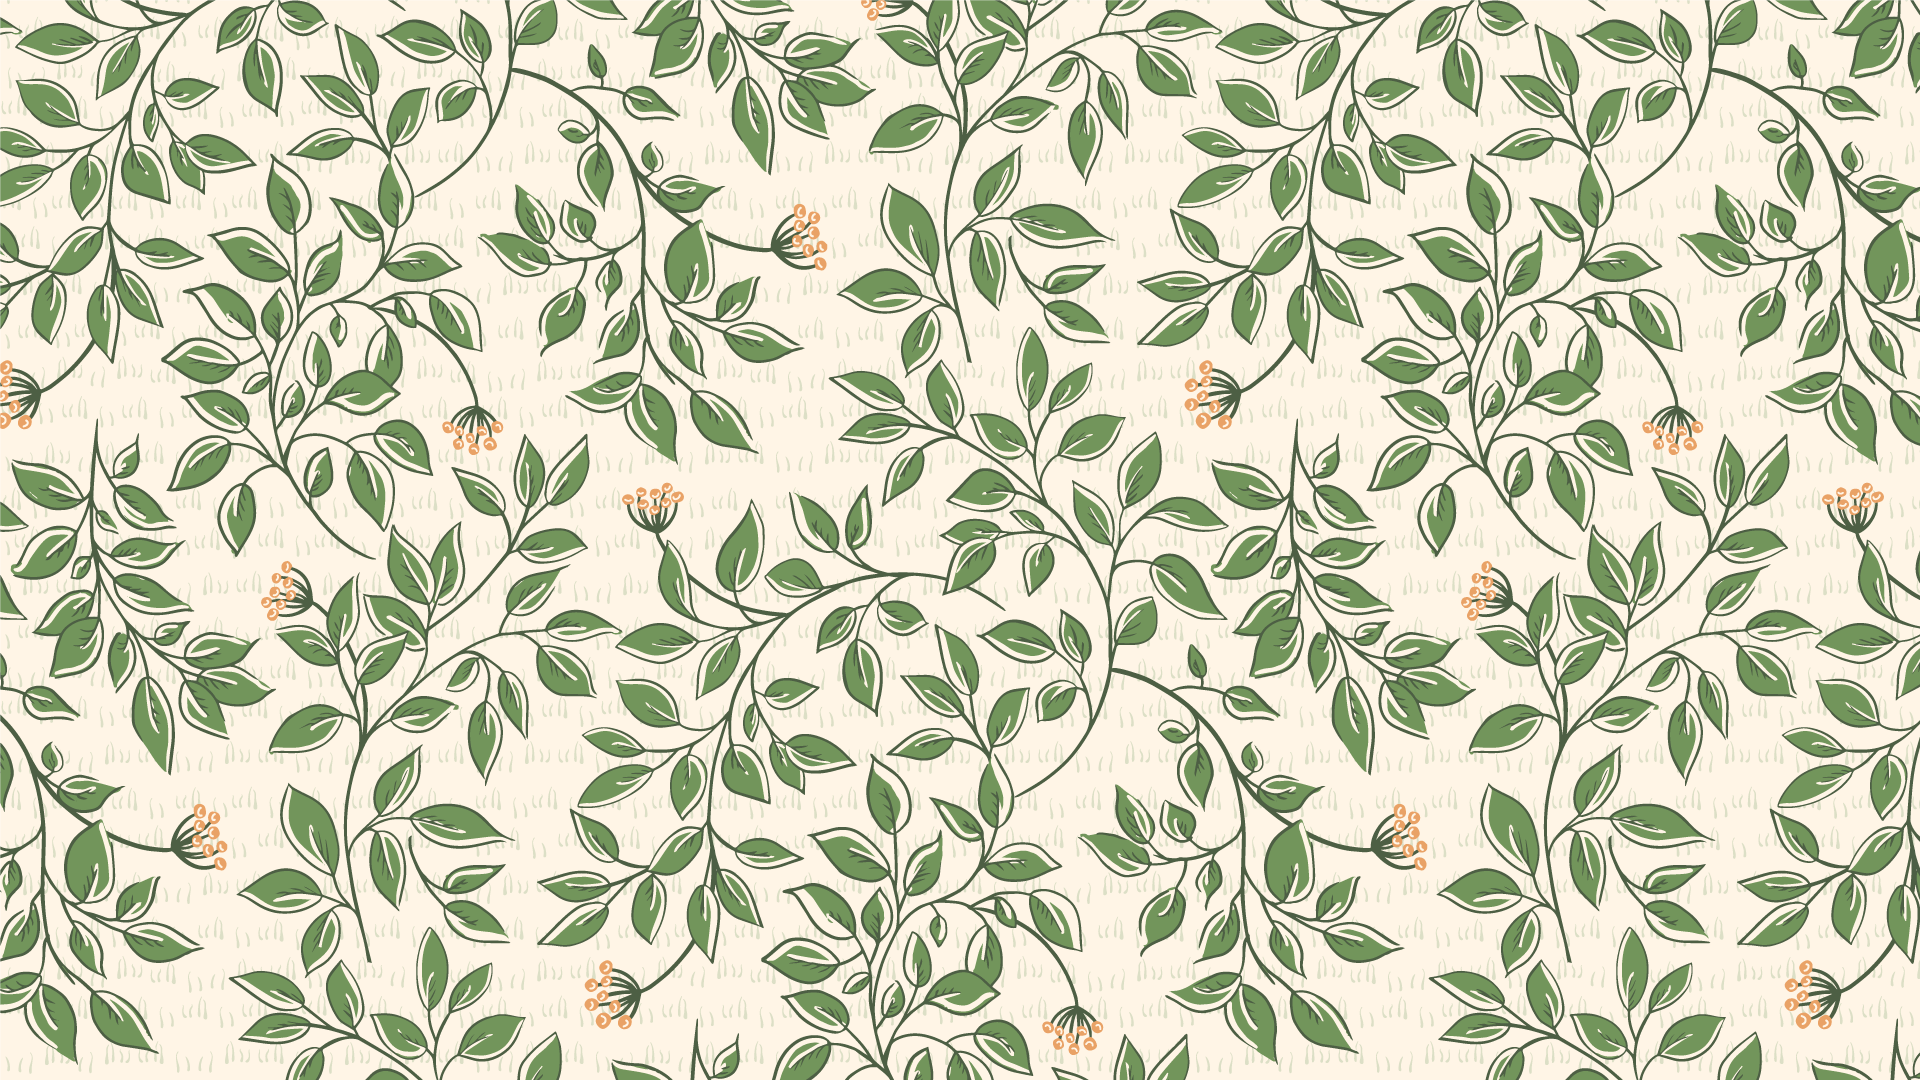 Carmen, floral pattern design created by Pascûal